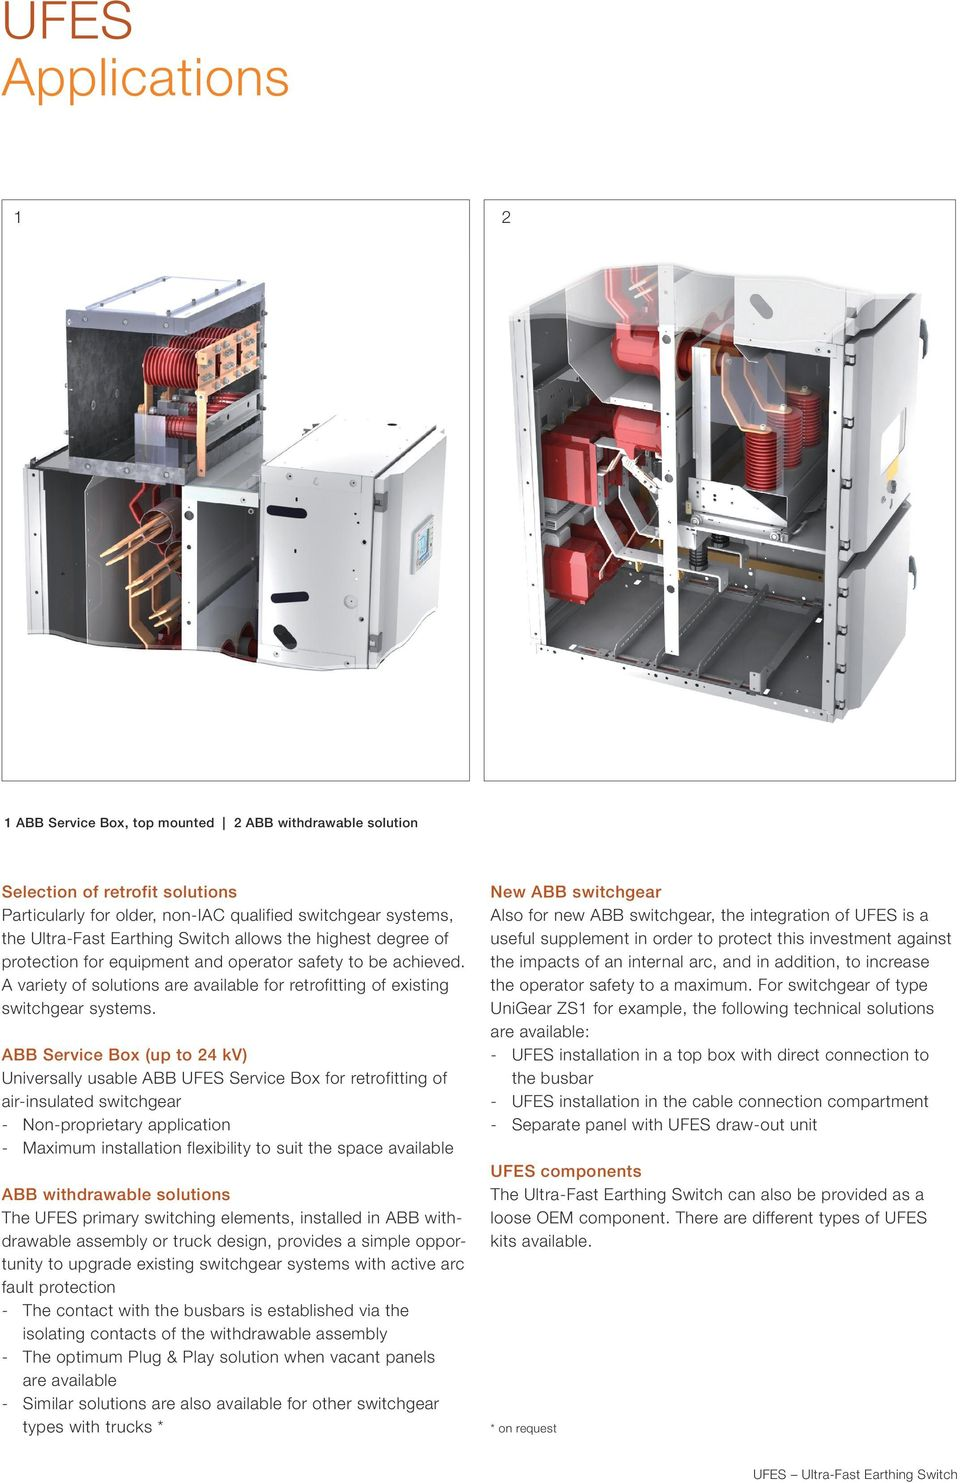 ABB Service Box (up to 4 kv) Universally usable ABB Service Box for retrofitting of air-insulated switchgear Non-proprietary application Maximum installation flexibility to suit the space available